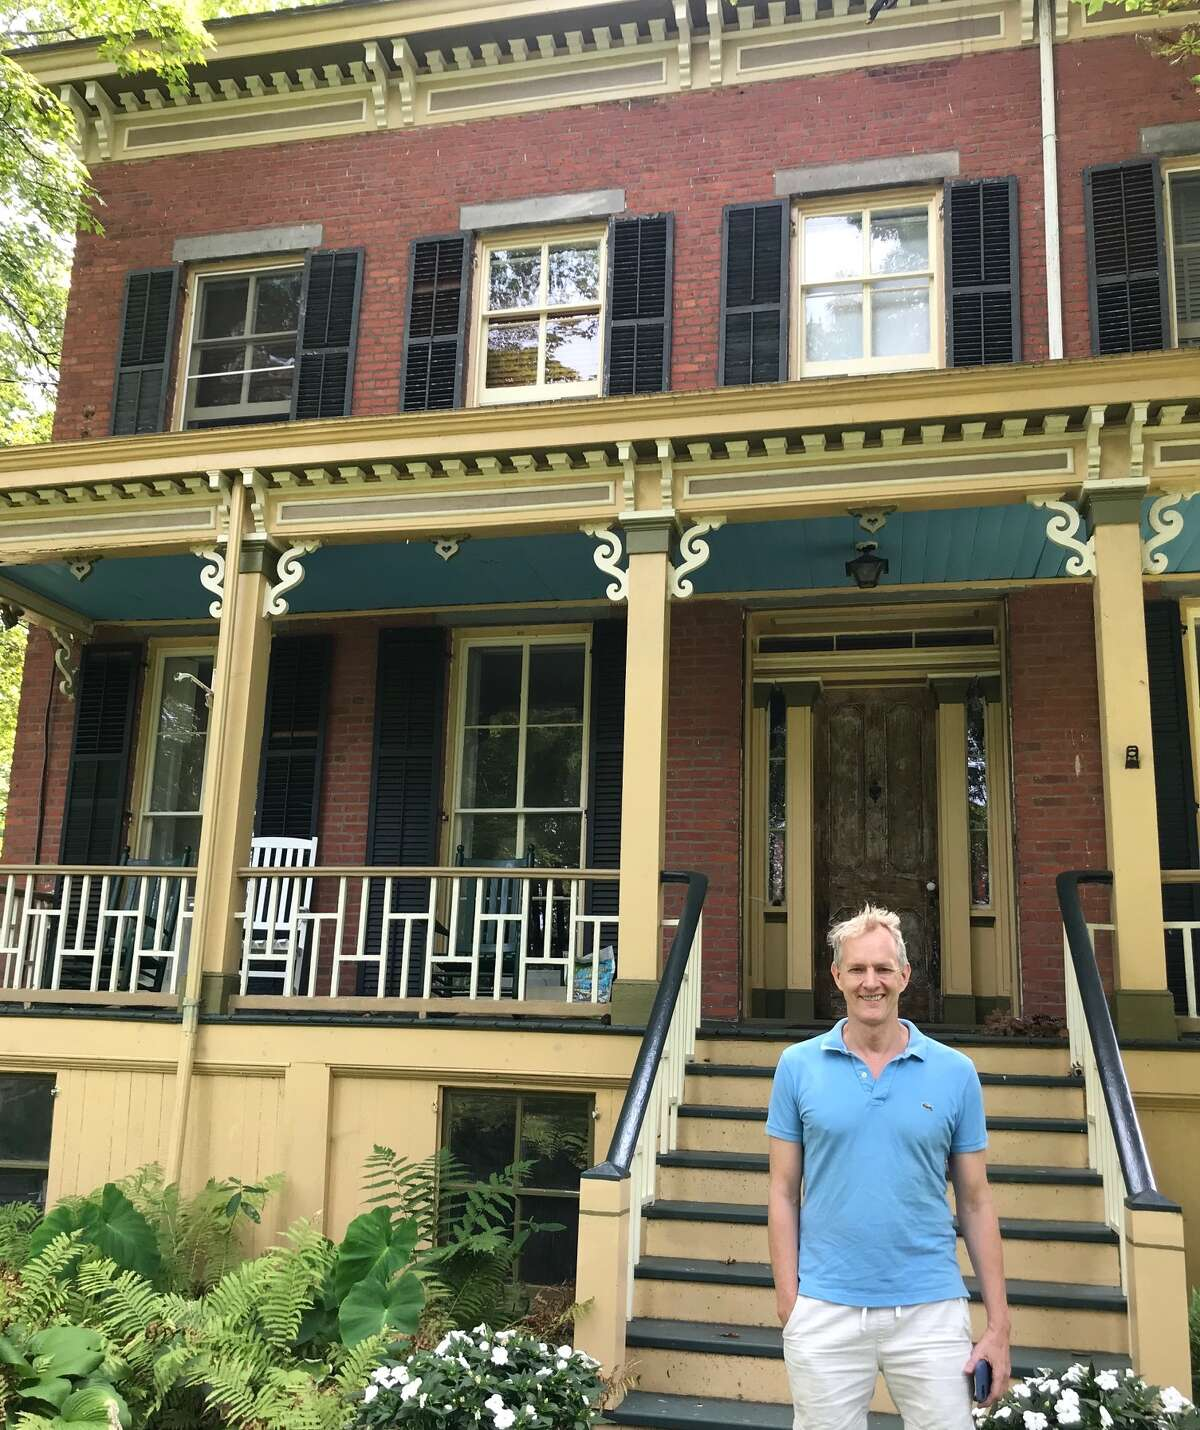 Conrad Hanson-Kelly outside of the 1850s brick house he rehabbed in Germantown.